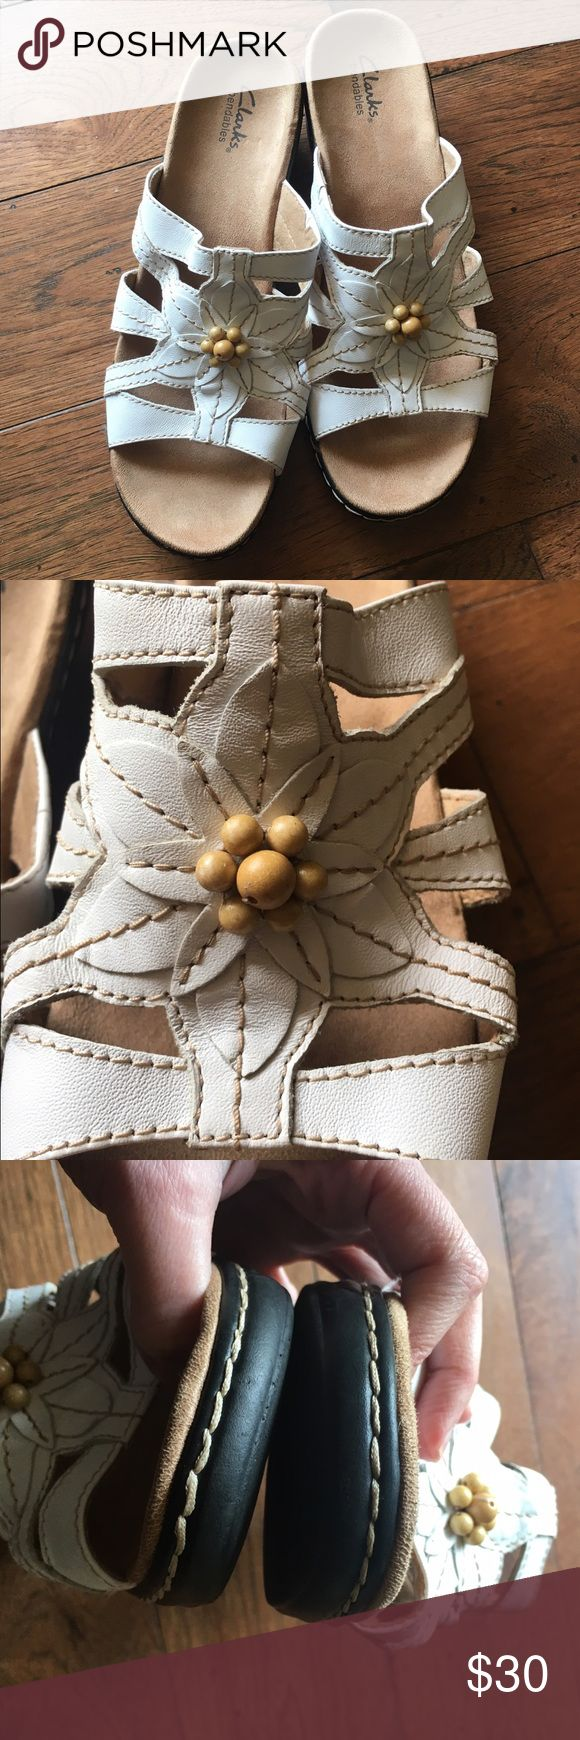 Like New Clarks Sandals Like New Off White Clarks Sandals!! No foot molding due to never wearing. Shoes are in perfect condition Leather upper with Floral detail Clarks Shoes Sandals